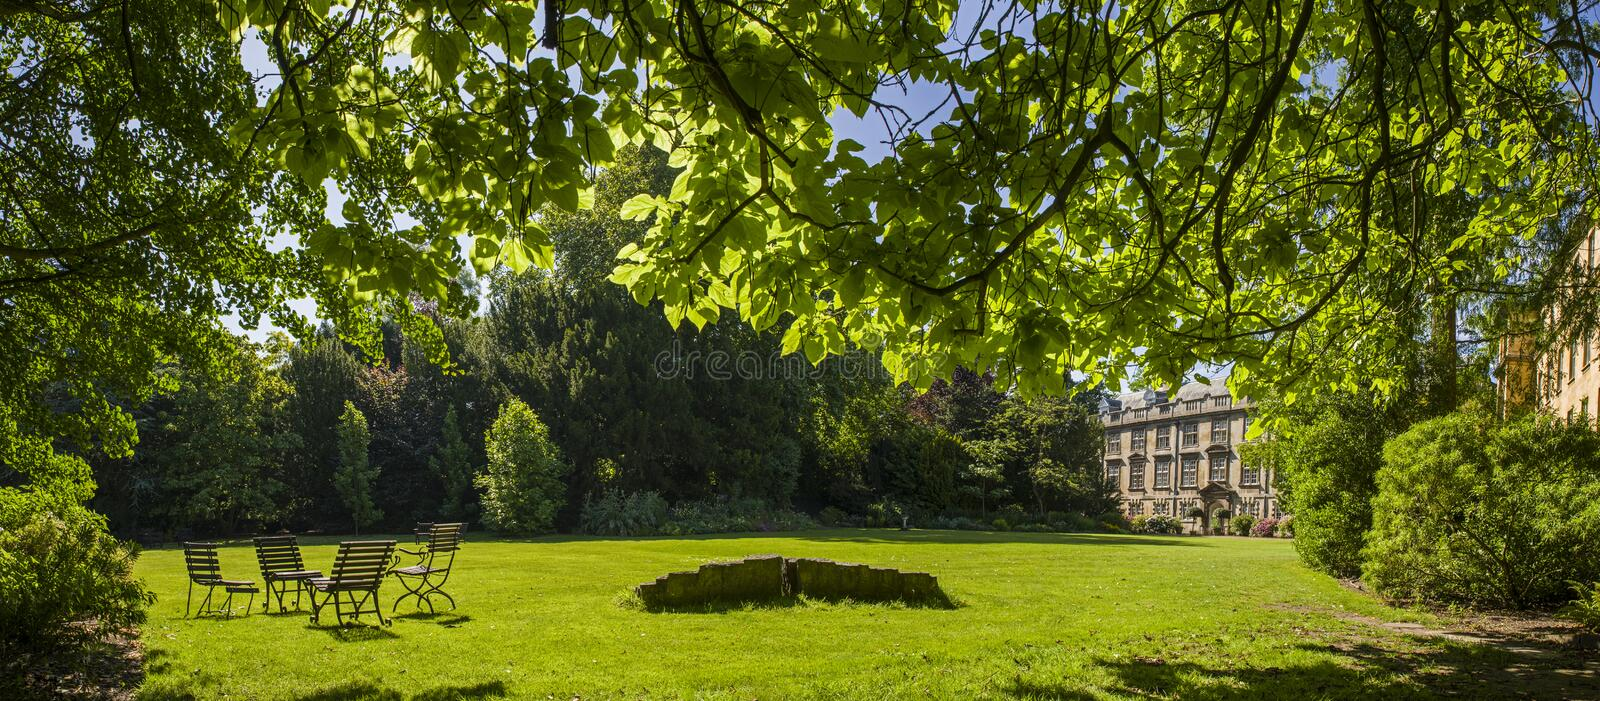 Fellows Garden at Christ's College in Cambridge royalty free stock photo